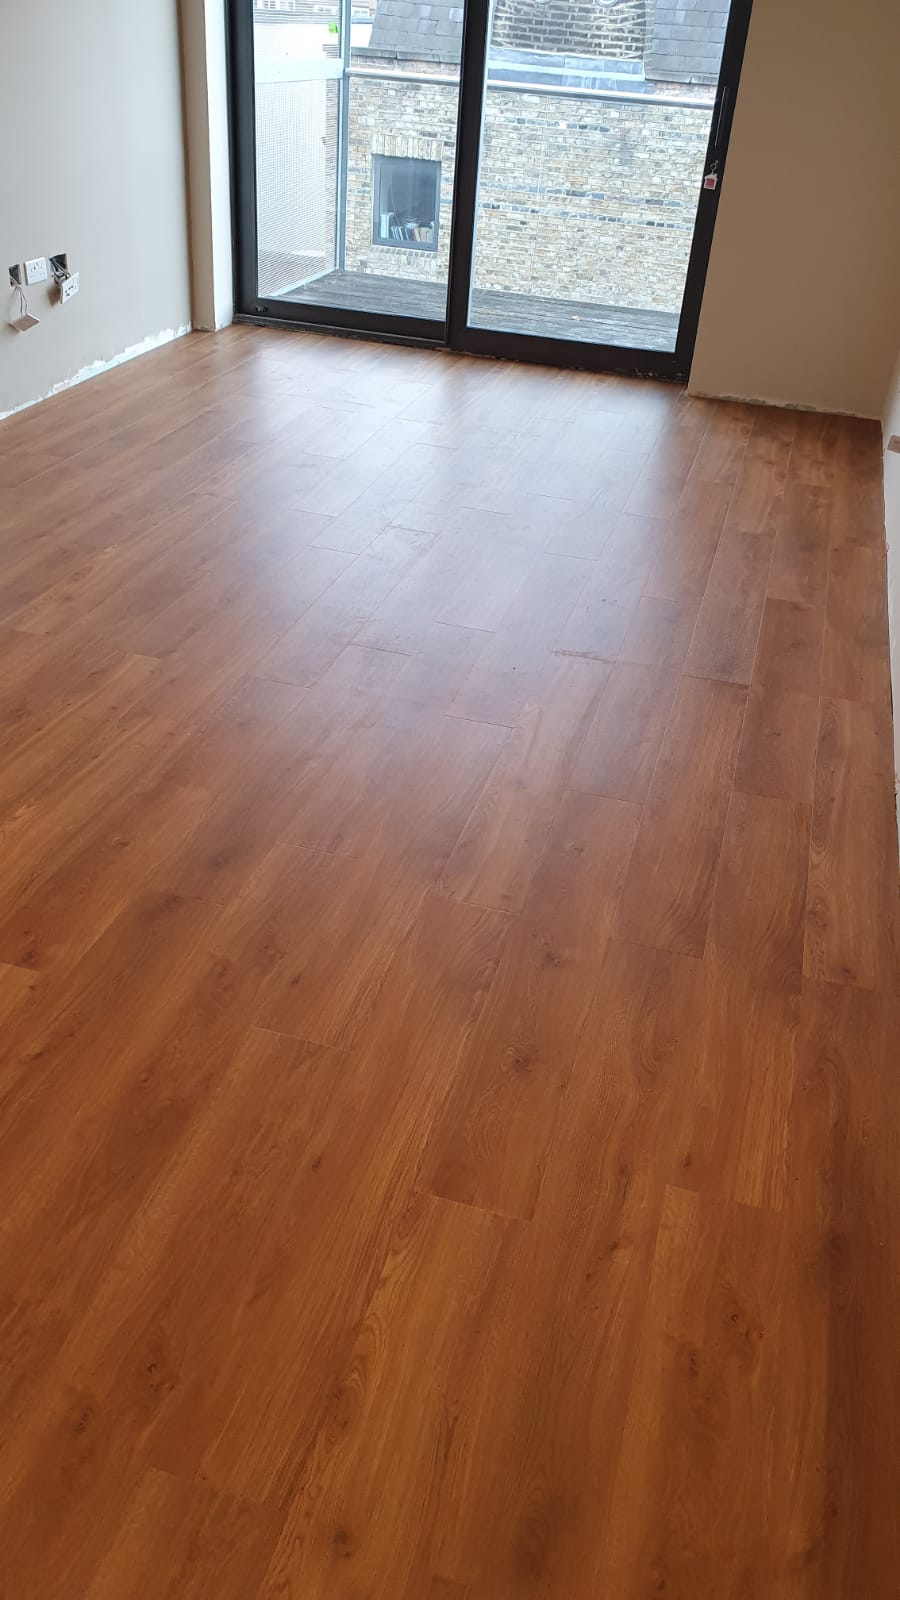 Amtico Spacia Traditional Oak Luxury Vinyl Tile Flooring 1